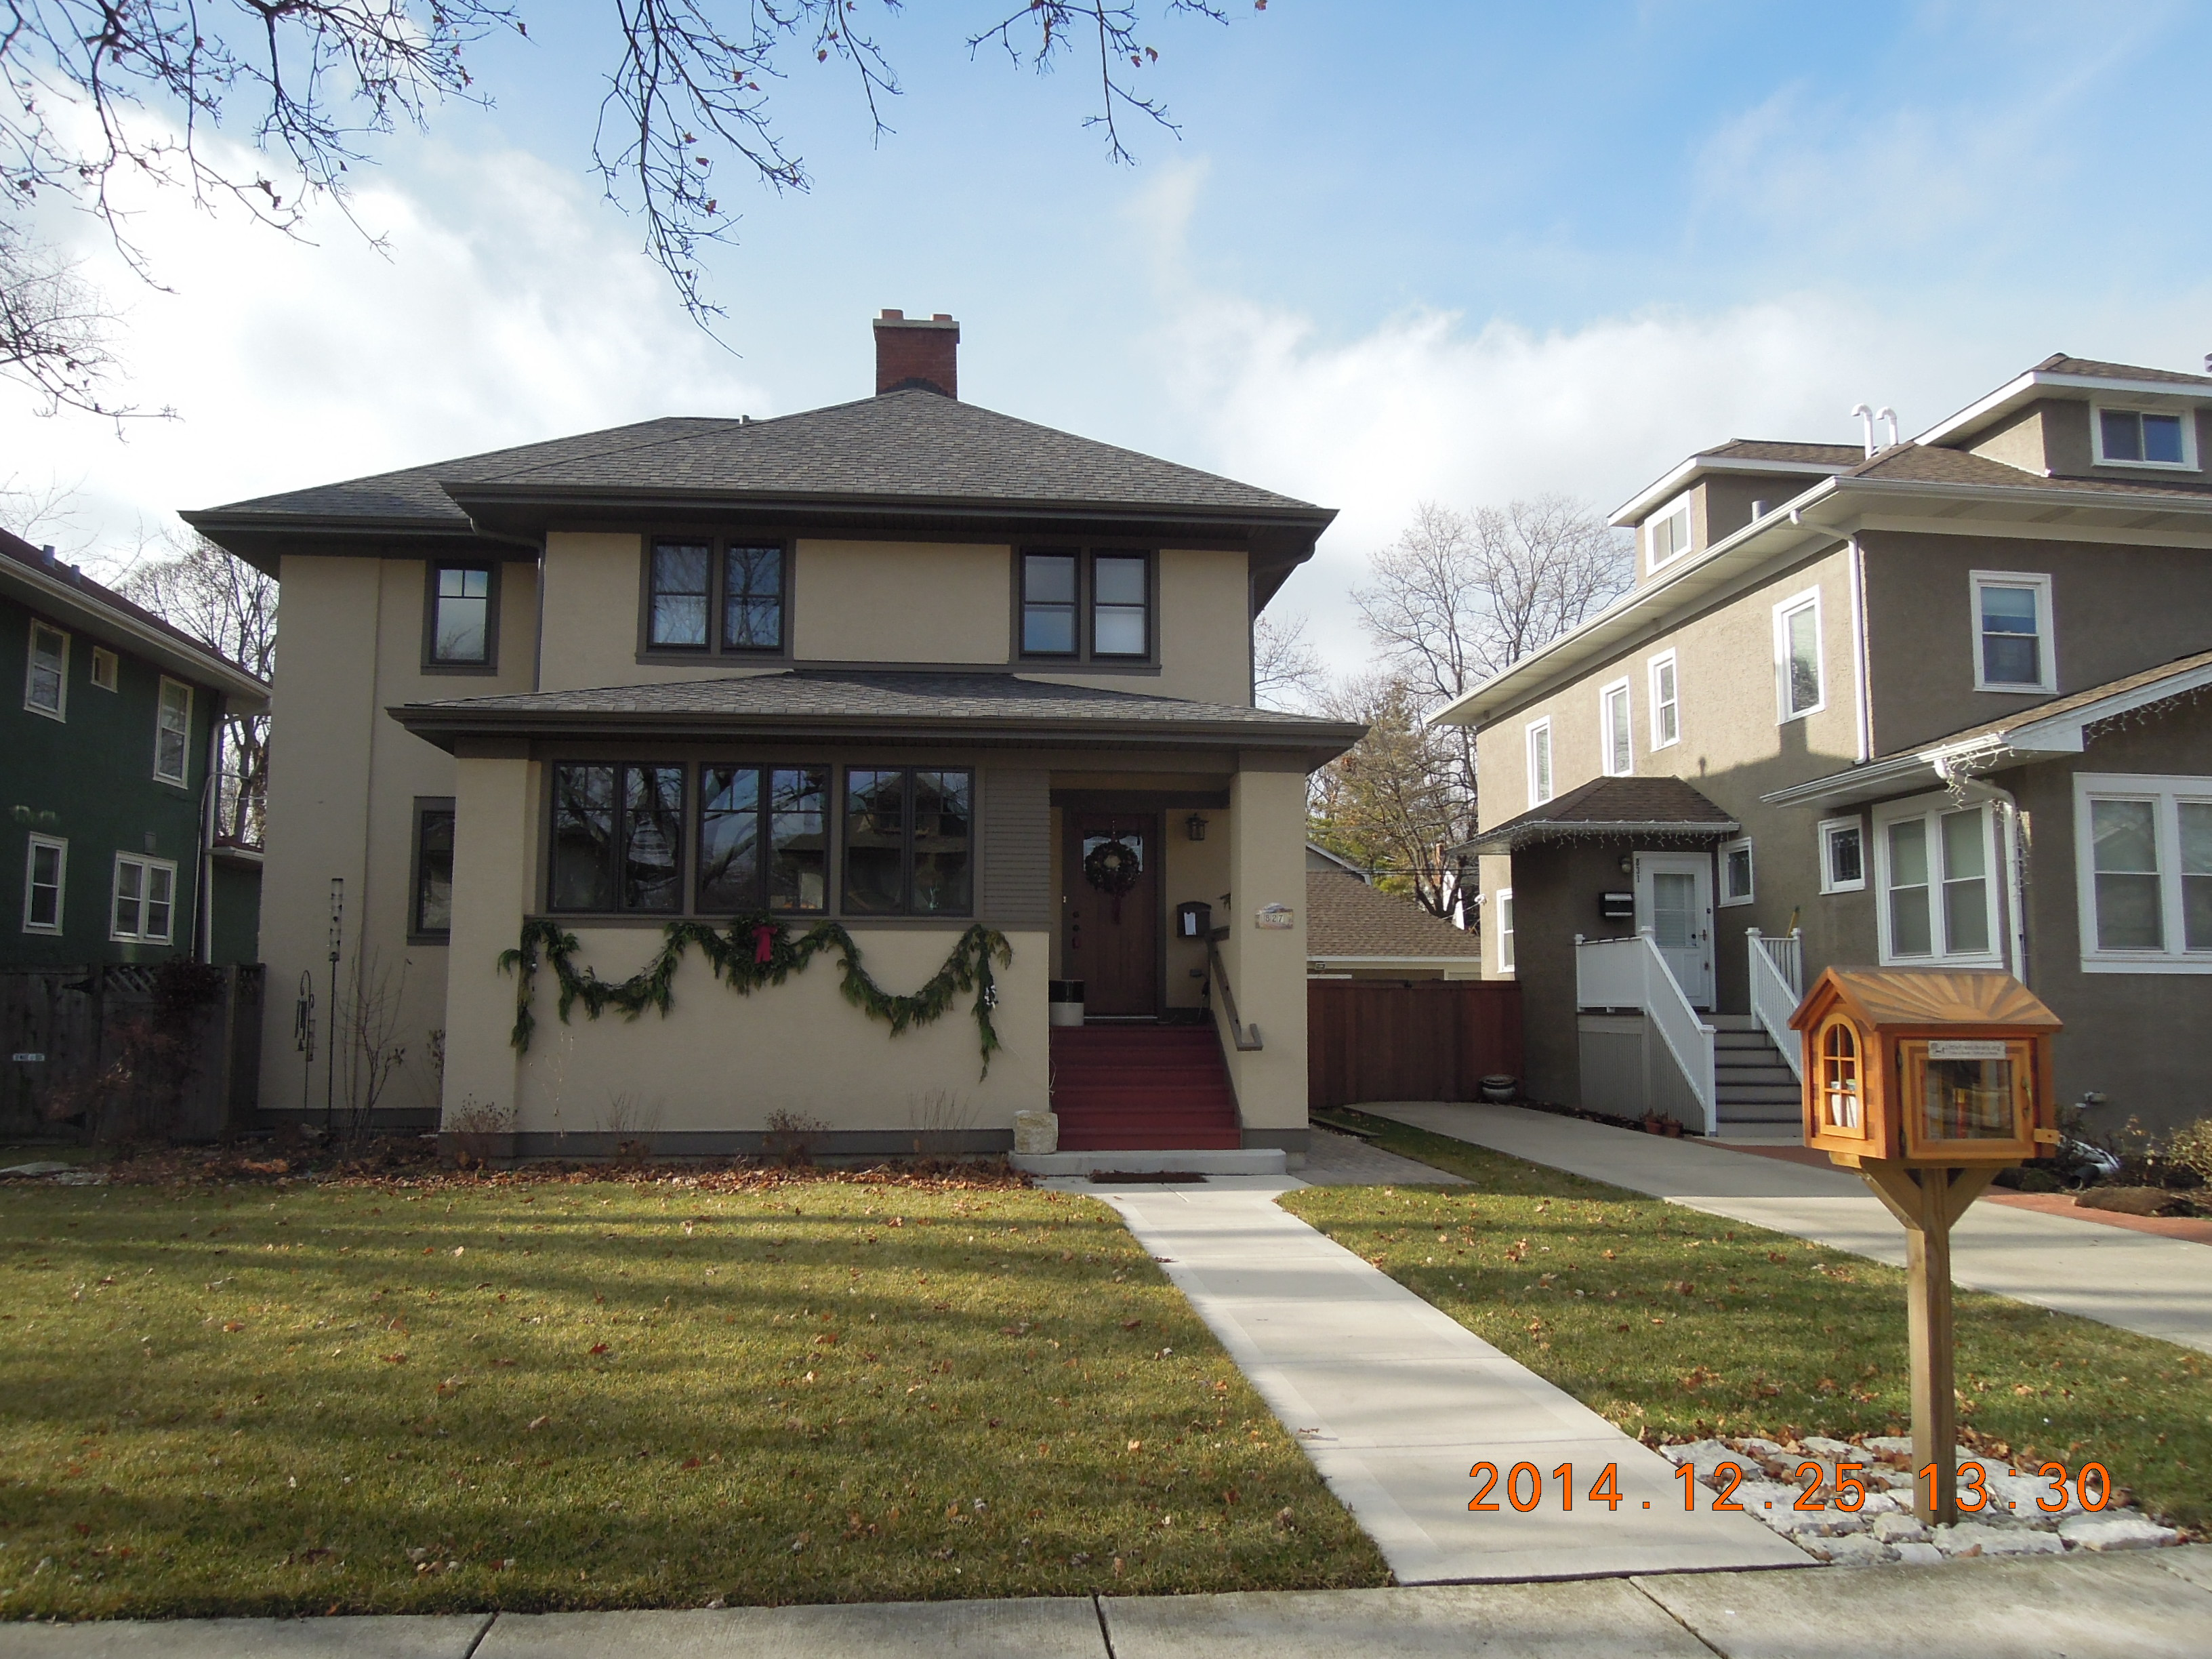 Elegant Home In The Affluent Historic District Of Oak Park Chicago Large Bedrooms Professionally Cleaned High Quality Food What Makes Our Homestay